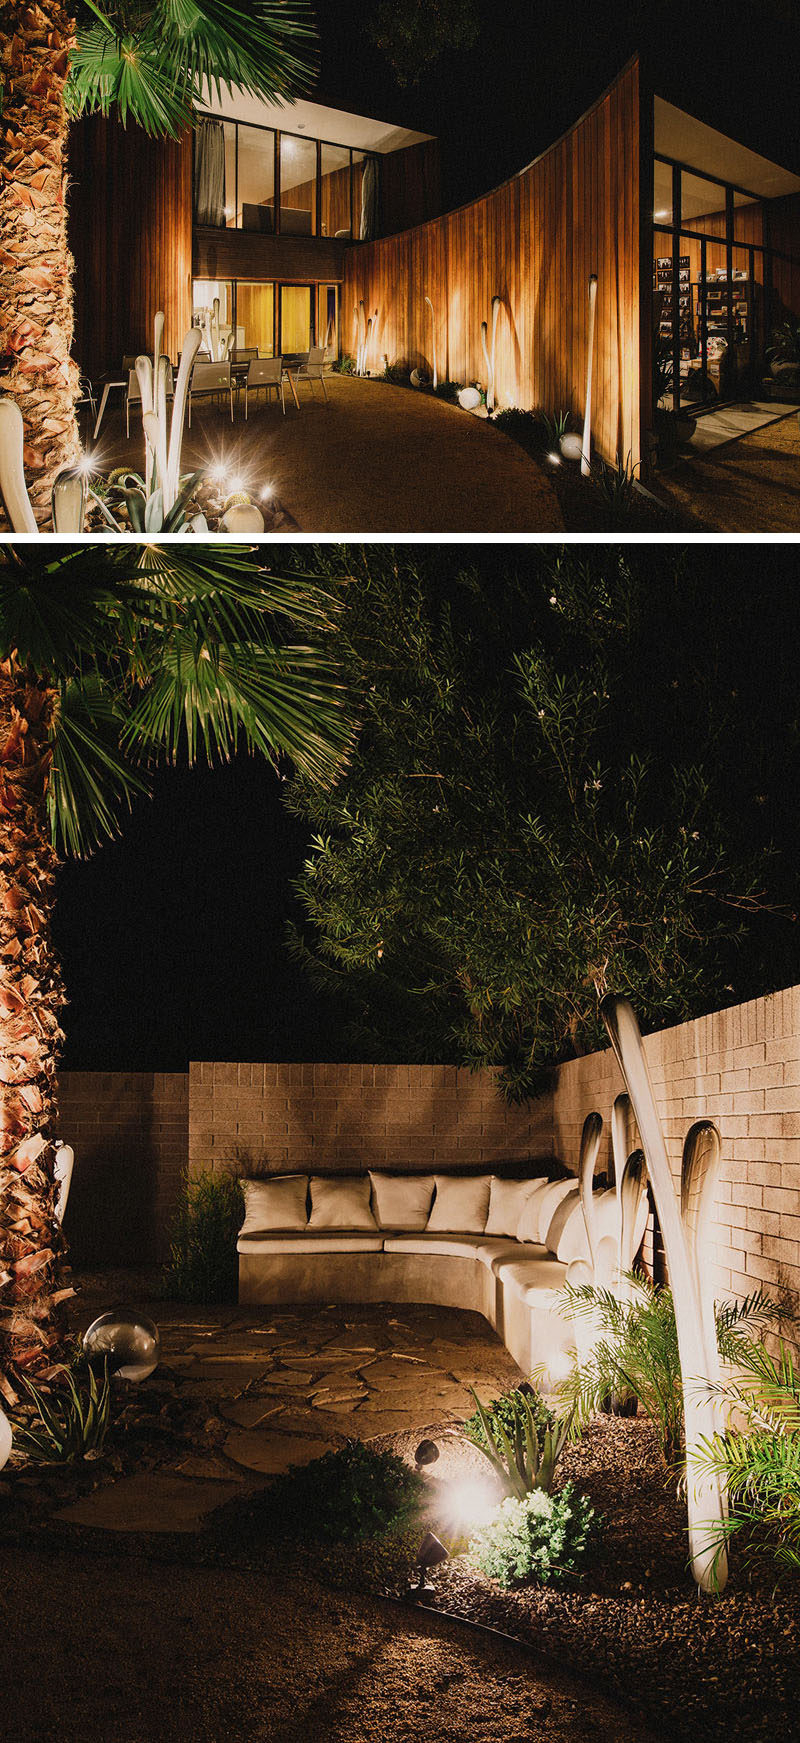 8 Outdoor Lighting Ideas To Inspire Your Spring Backyard Makeover with 14 Genius Ways How to Upgrade Backyard Lighting Ideas